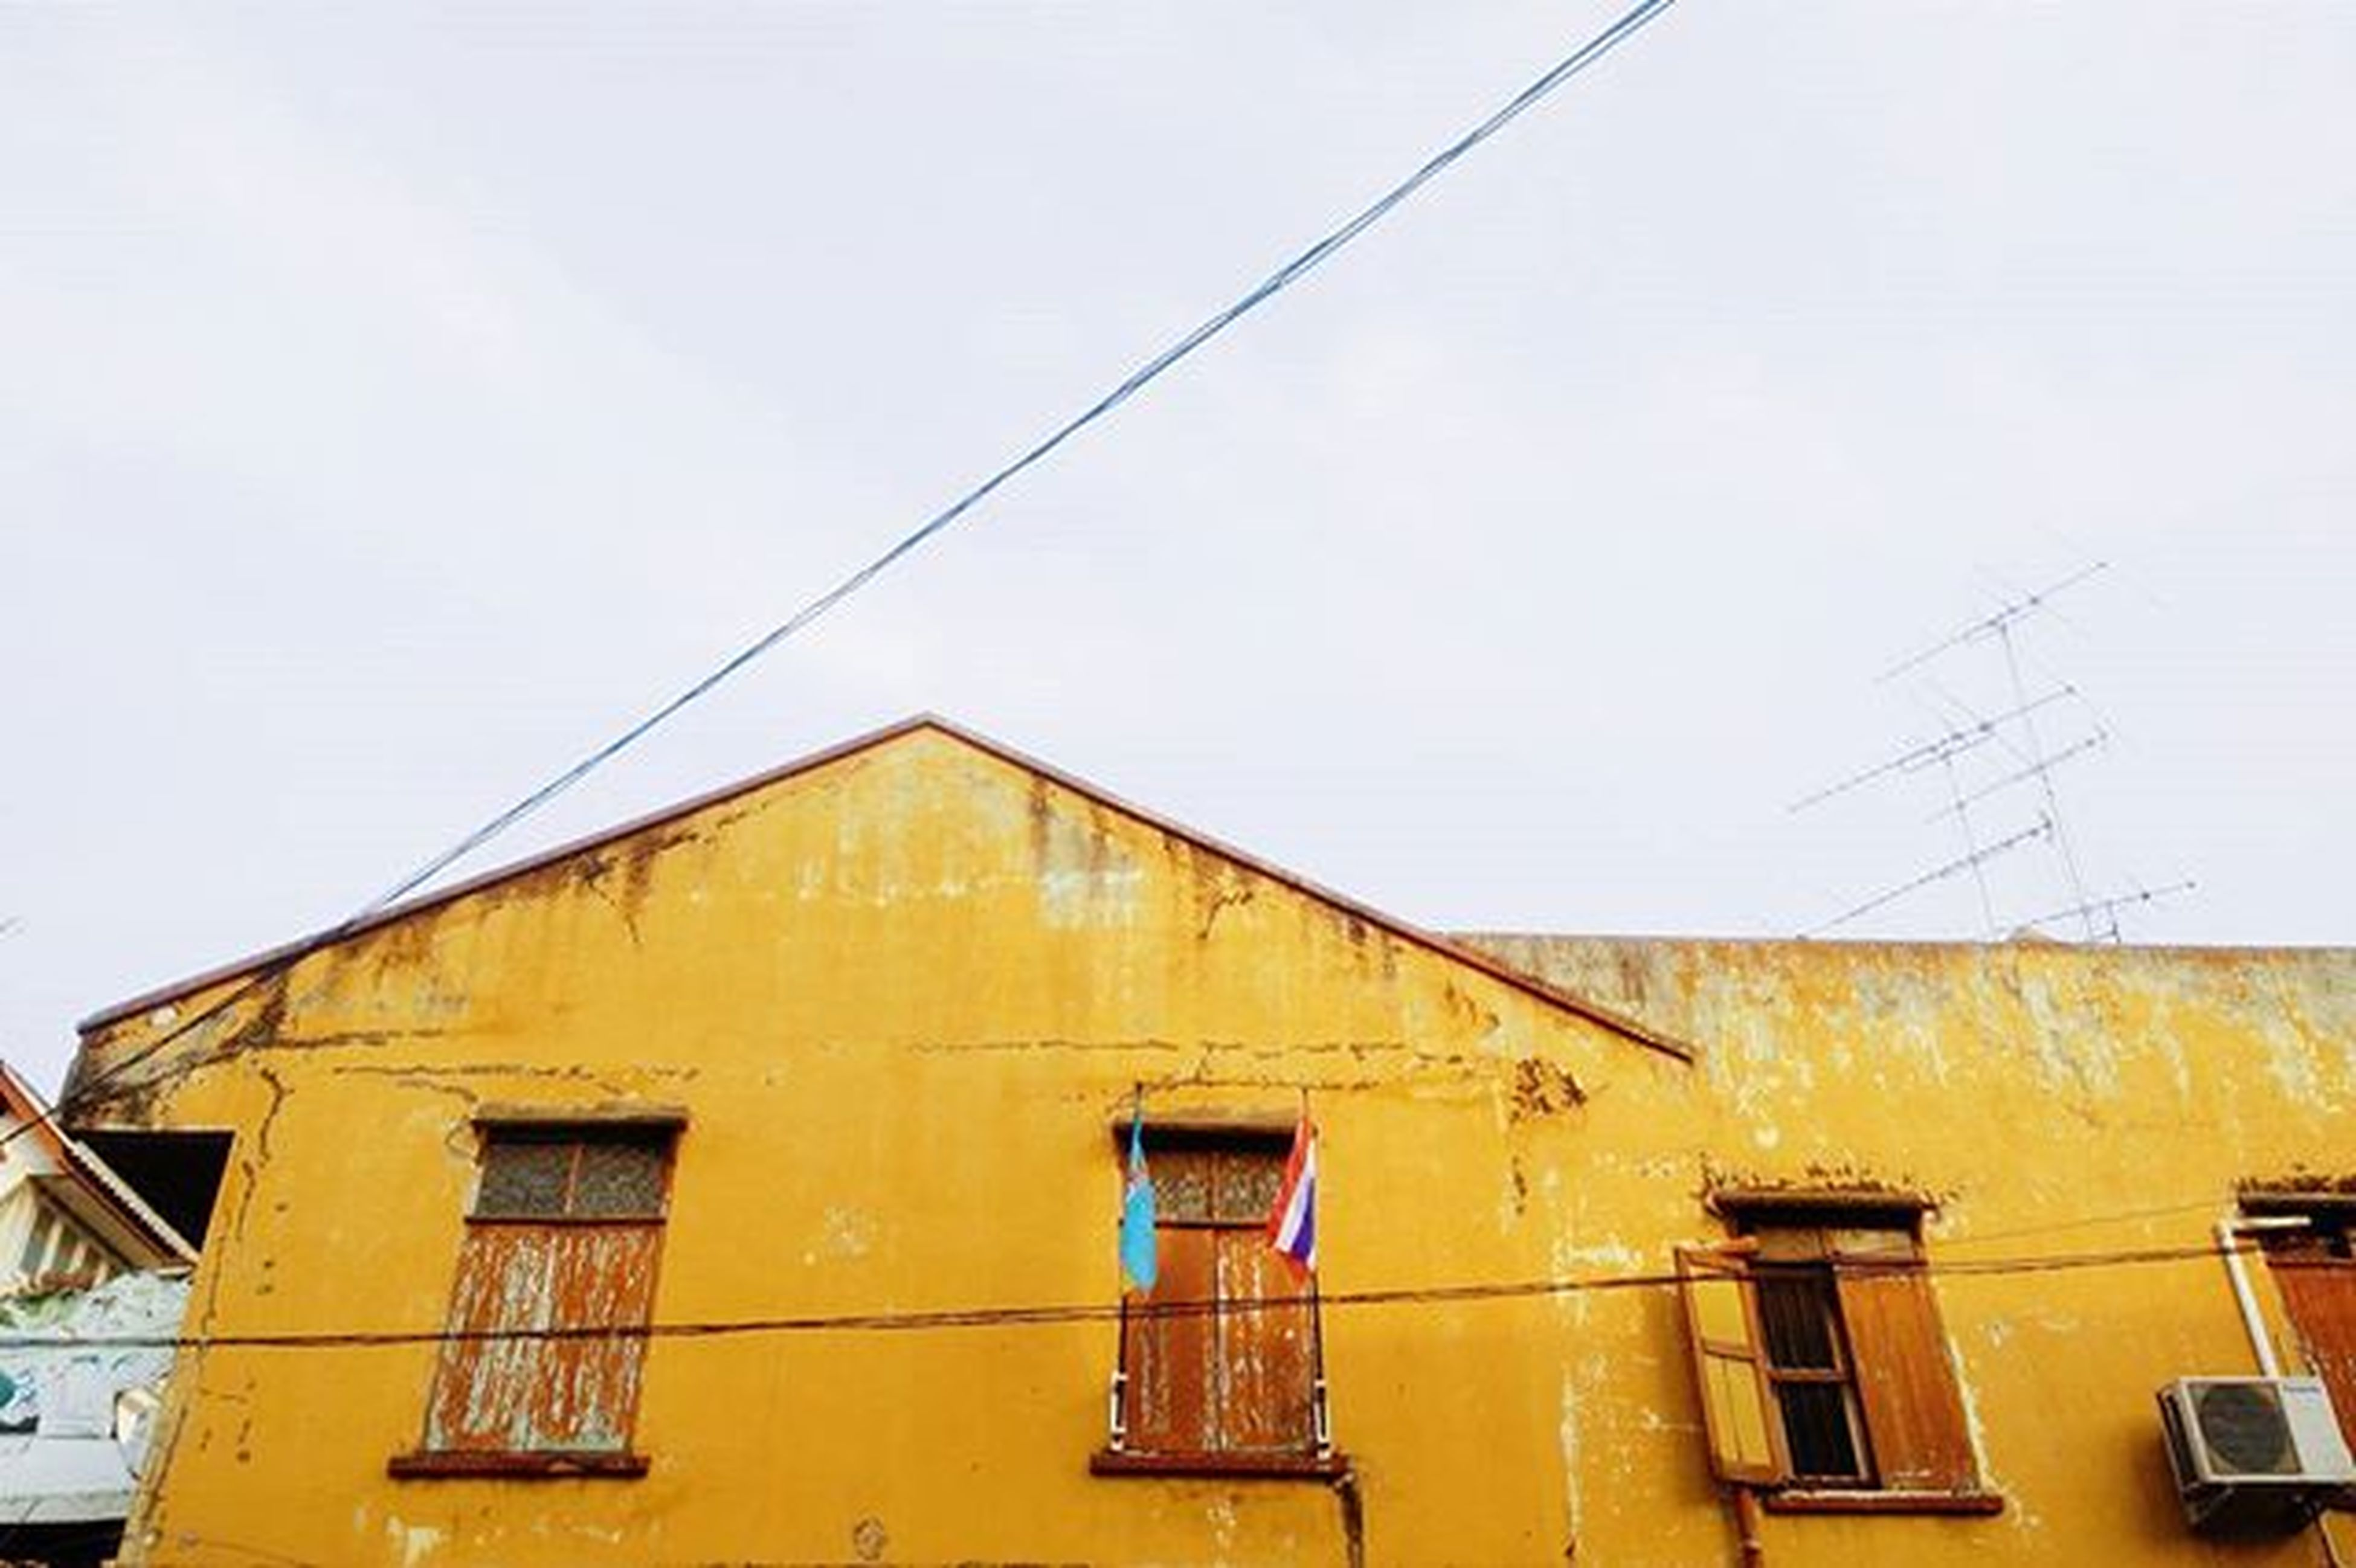 architecture, building exterior, built structure, low angle view, residential structure, residential building, house, window, power line, building, cable, clear sky, day, outdoors, no people, sky, roof, high section, copy space, yellow